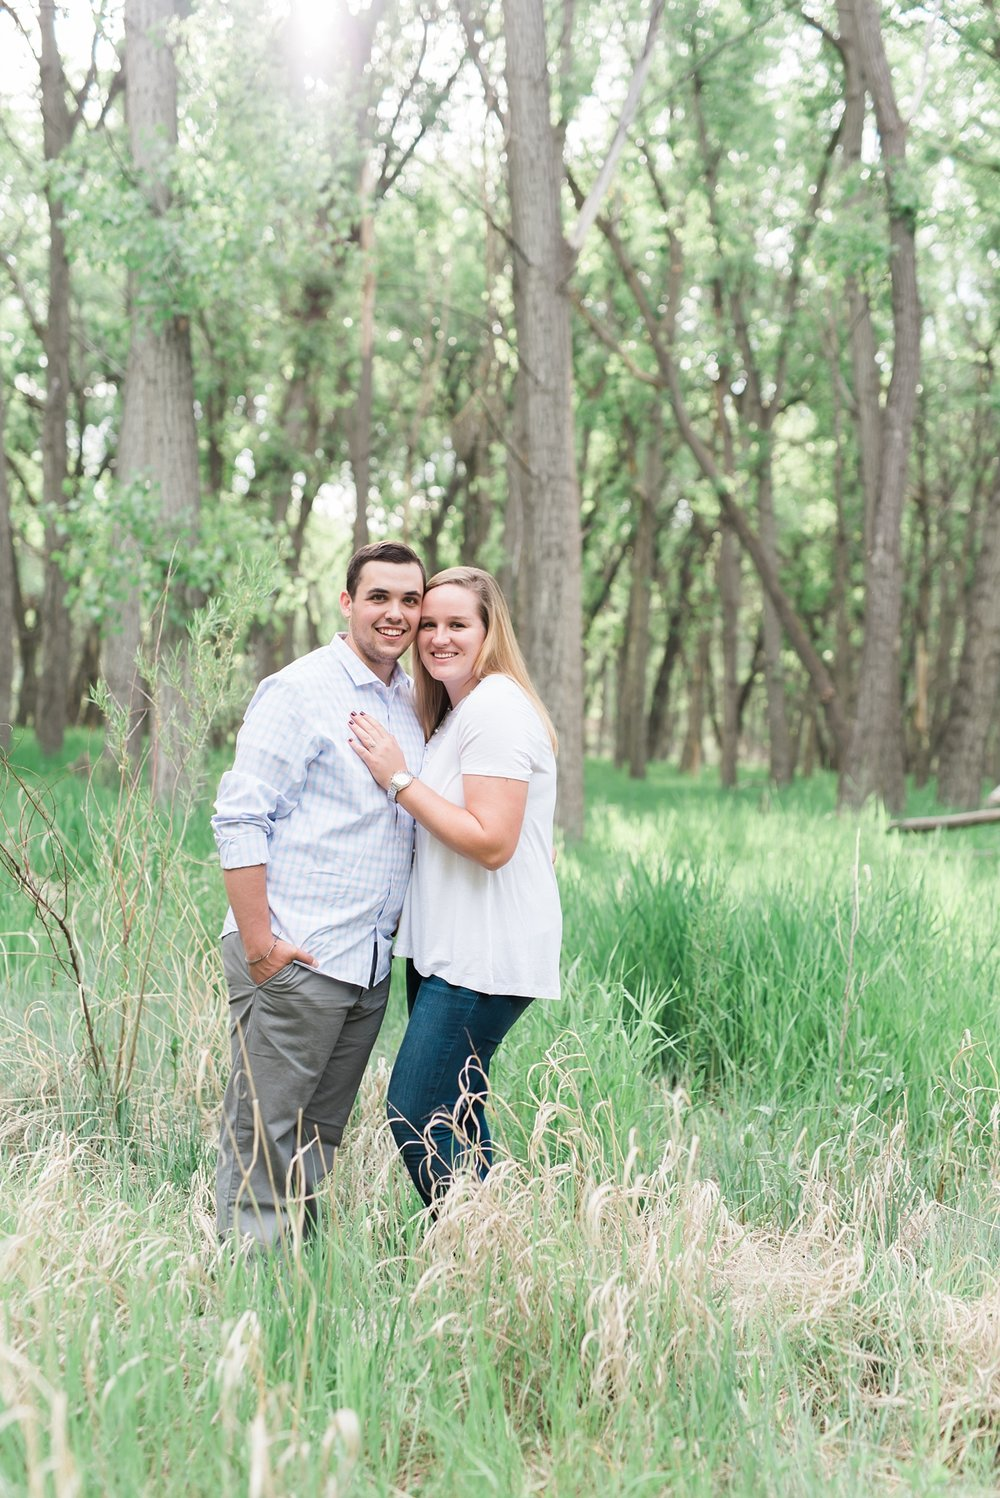 Liv + Nick are getting married Spring 2017 and their engagement session had two parts. One at Stranahan's Distillery and the other at Cherry Creek State Park.